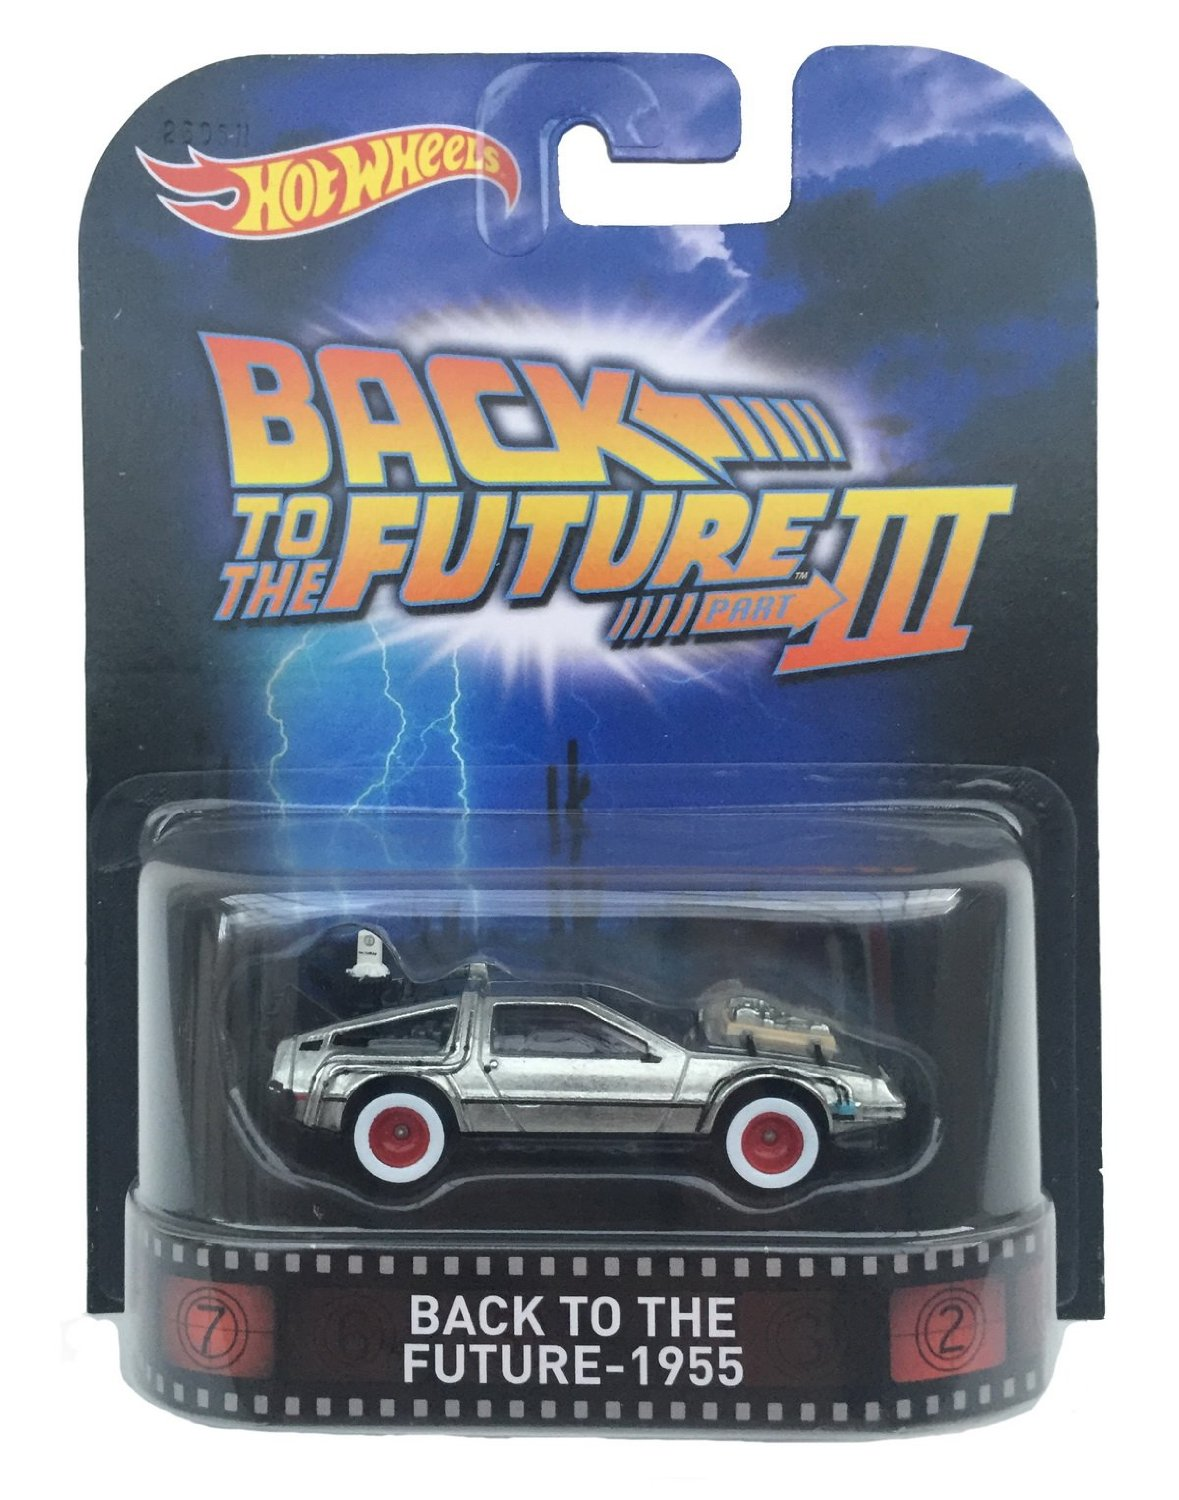 Hot Wheels 1:64 Scale Retro Entertainment Back to the Future III 1955 by Hot Wheels